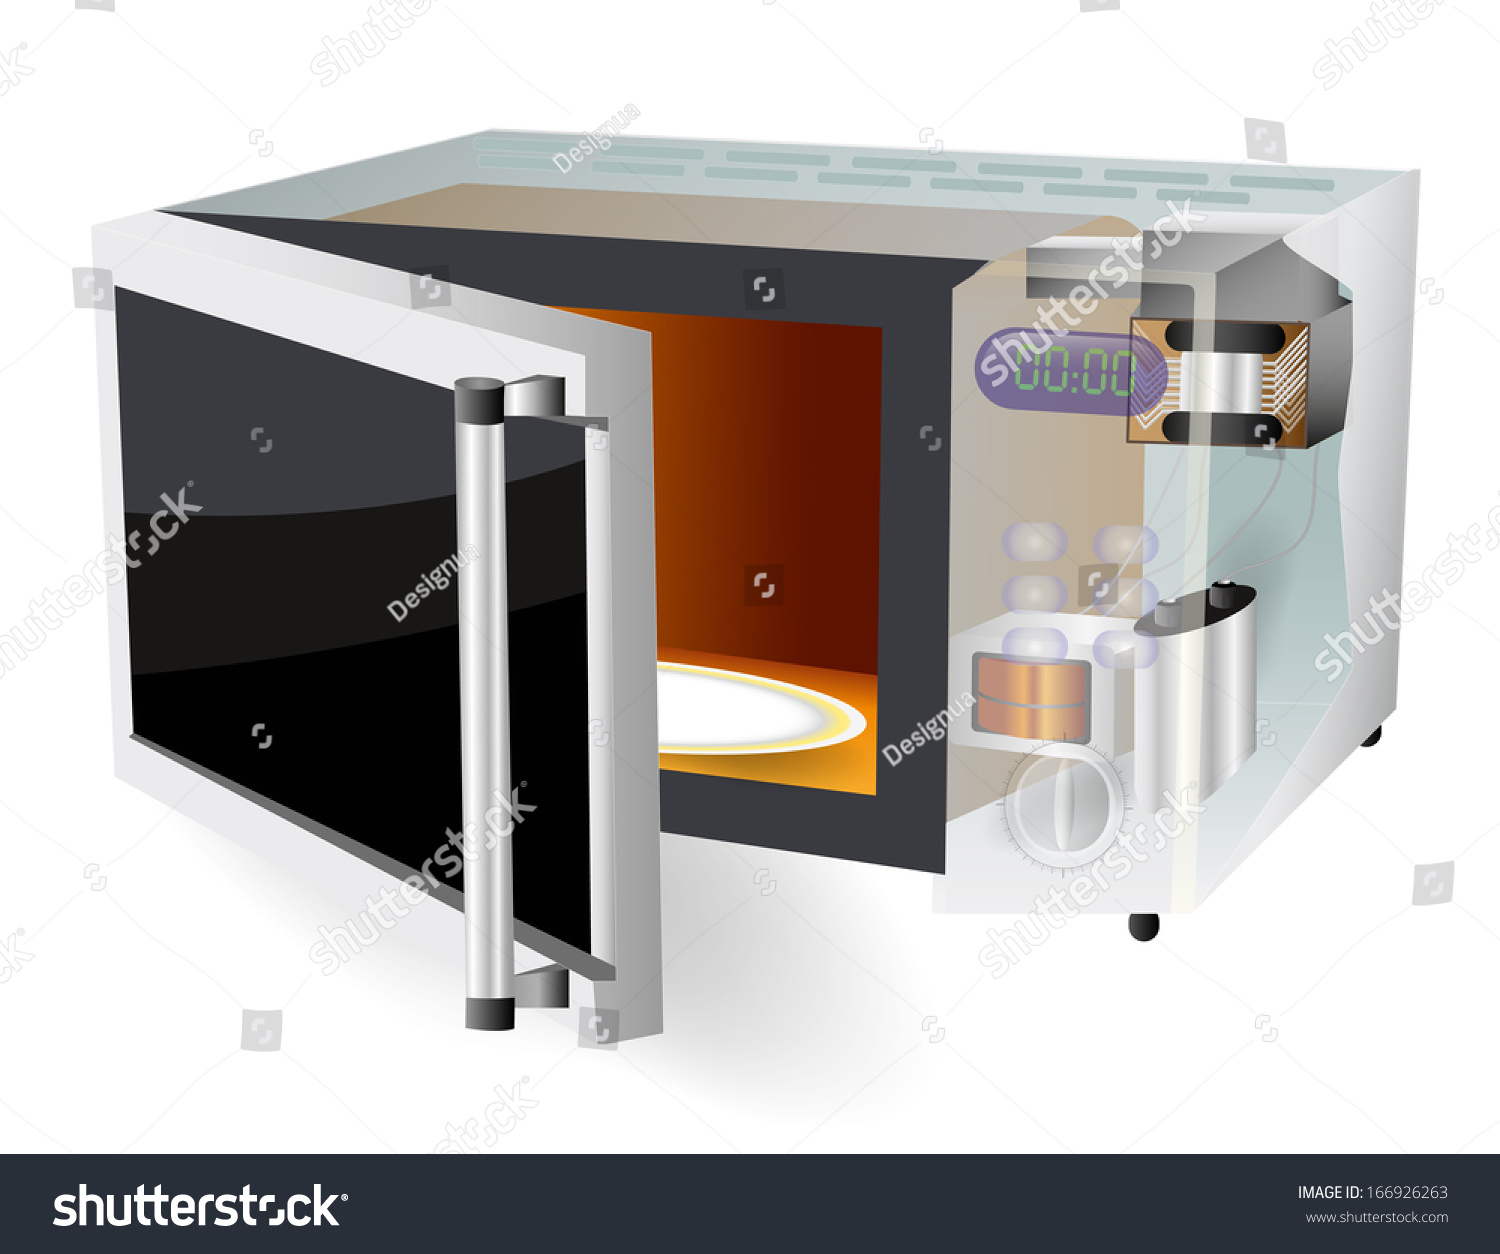 The Internal Structure Of A Microwave Oven Stock Photo